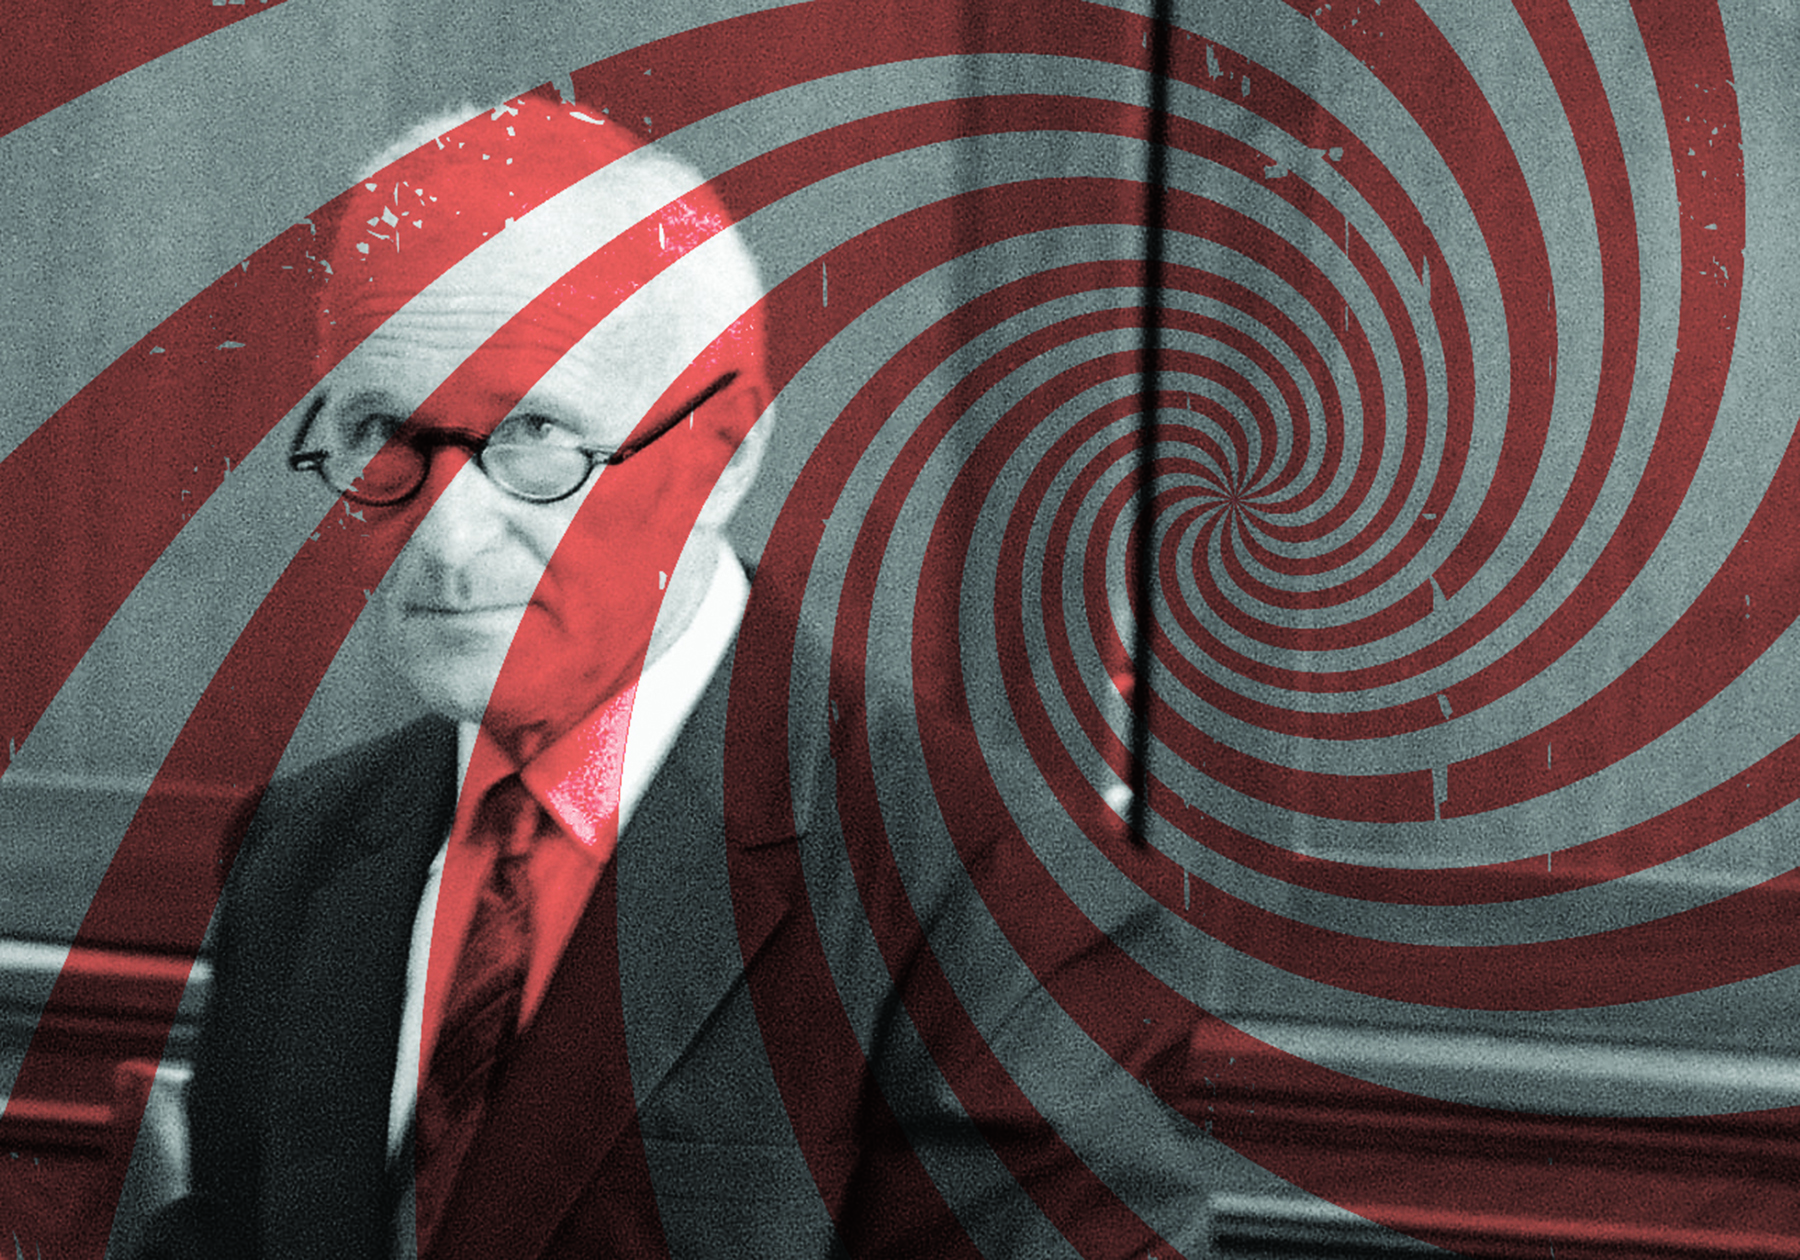 The CIA chemist who sought the secrets of mind control